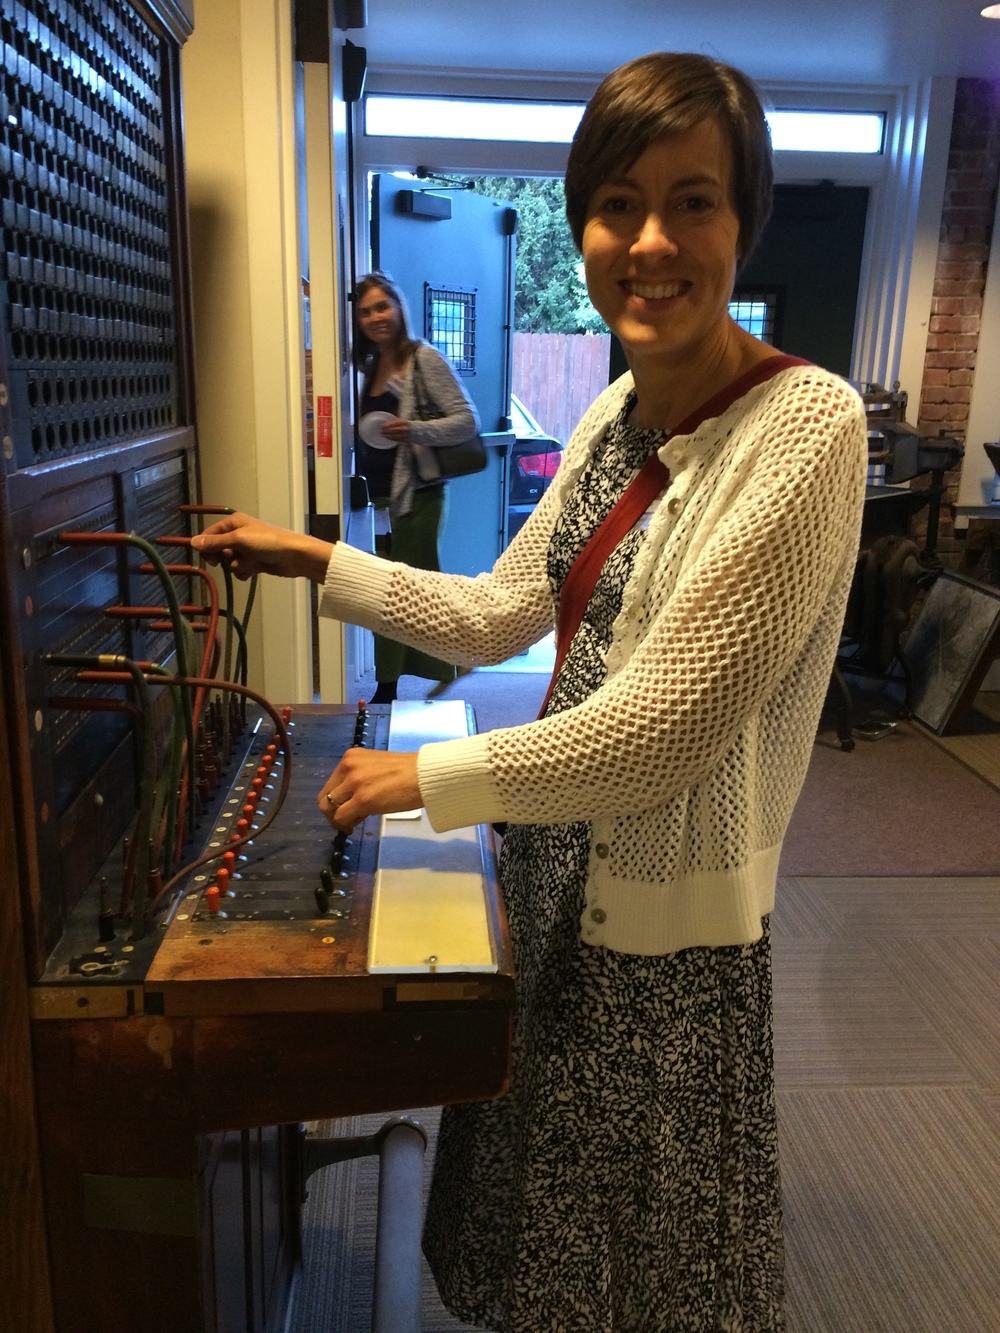 Outreach Director Christine Brown marveled at the antique switchboard.